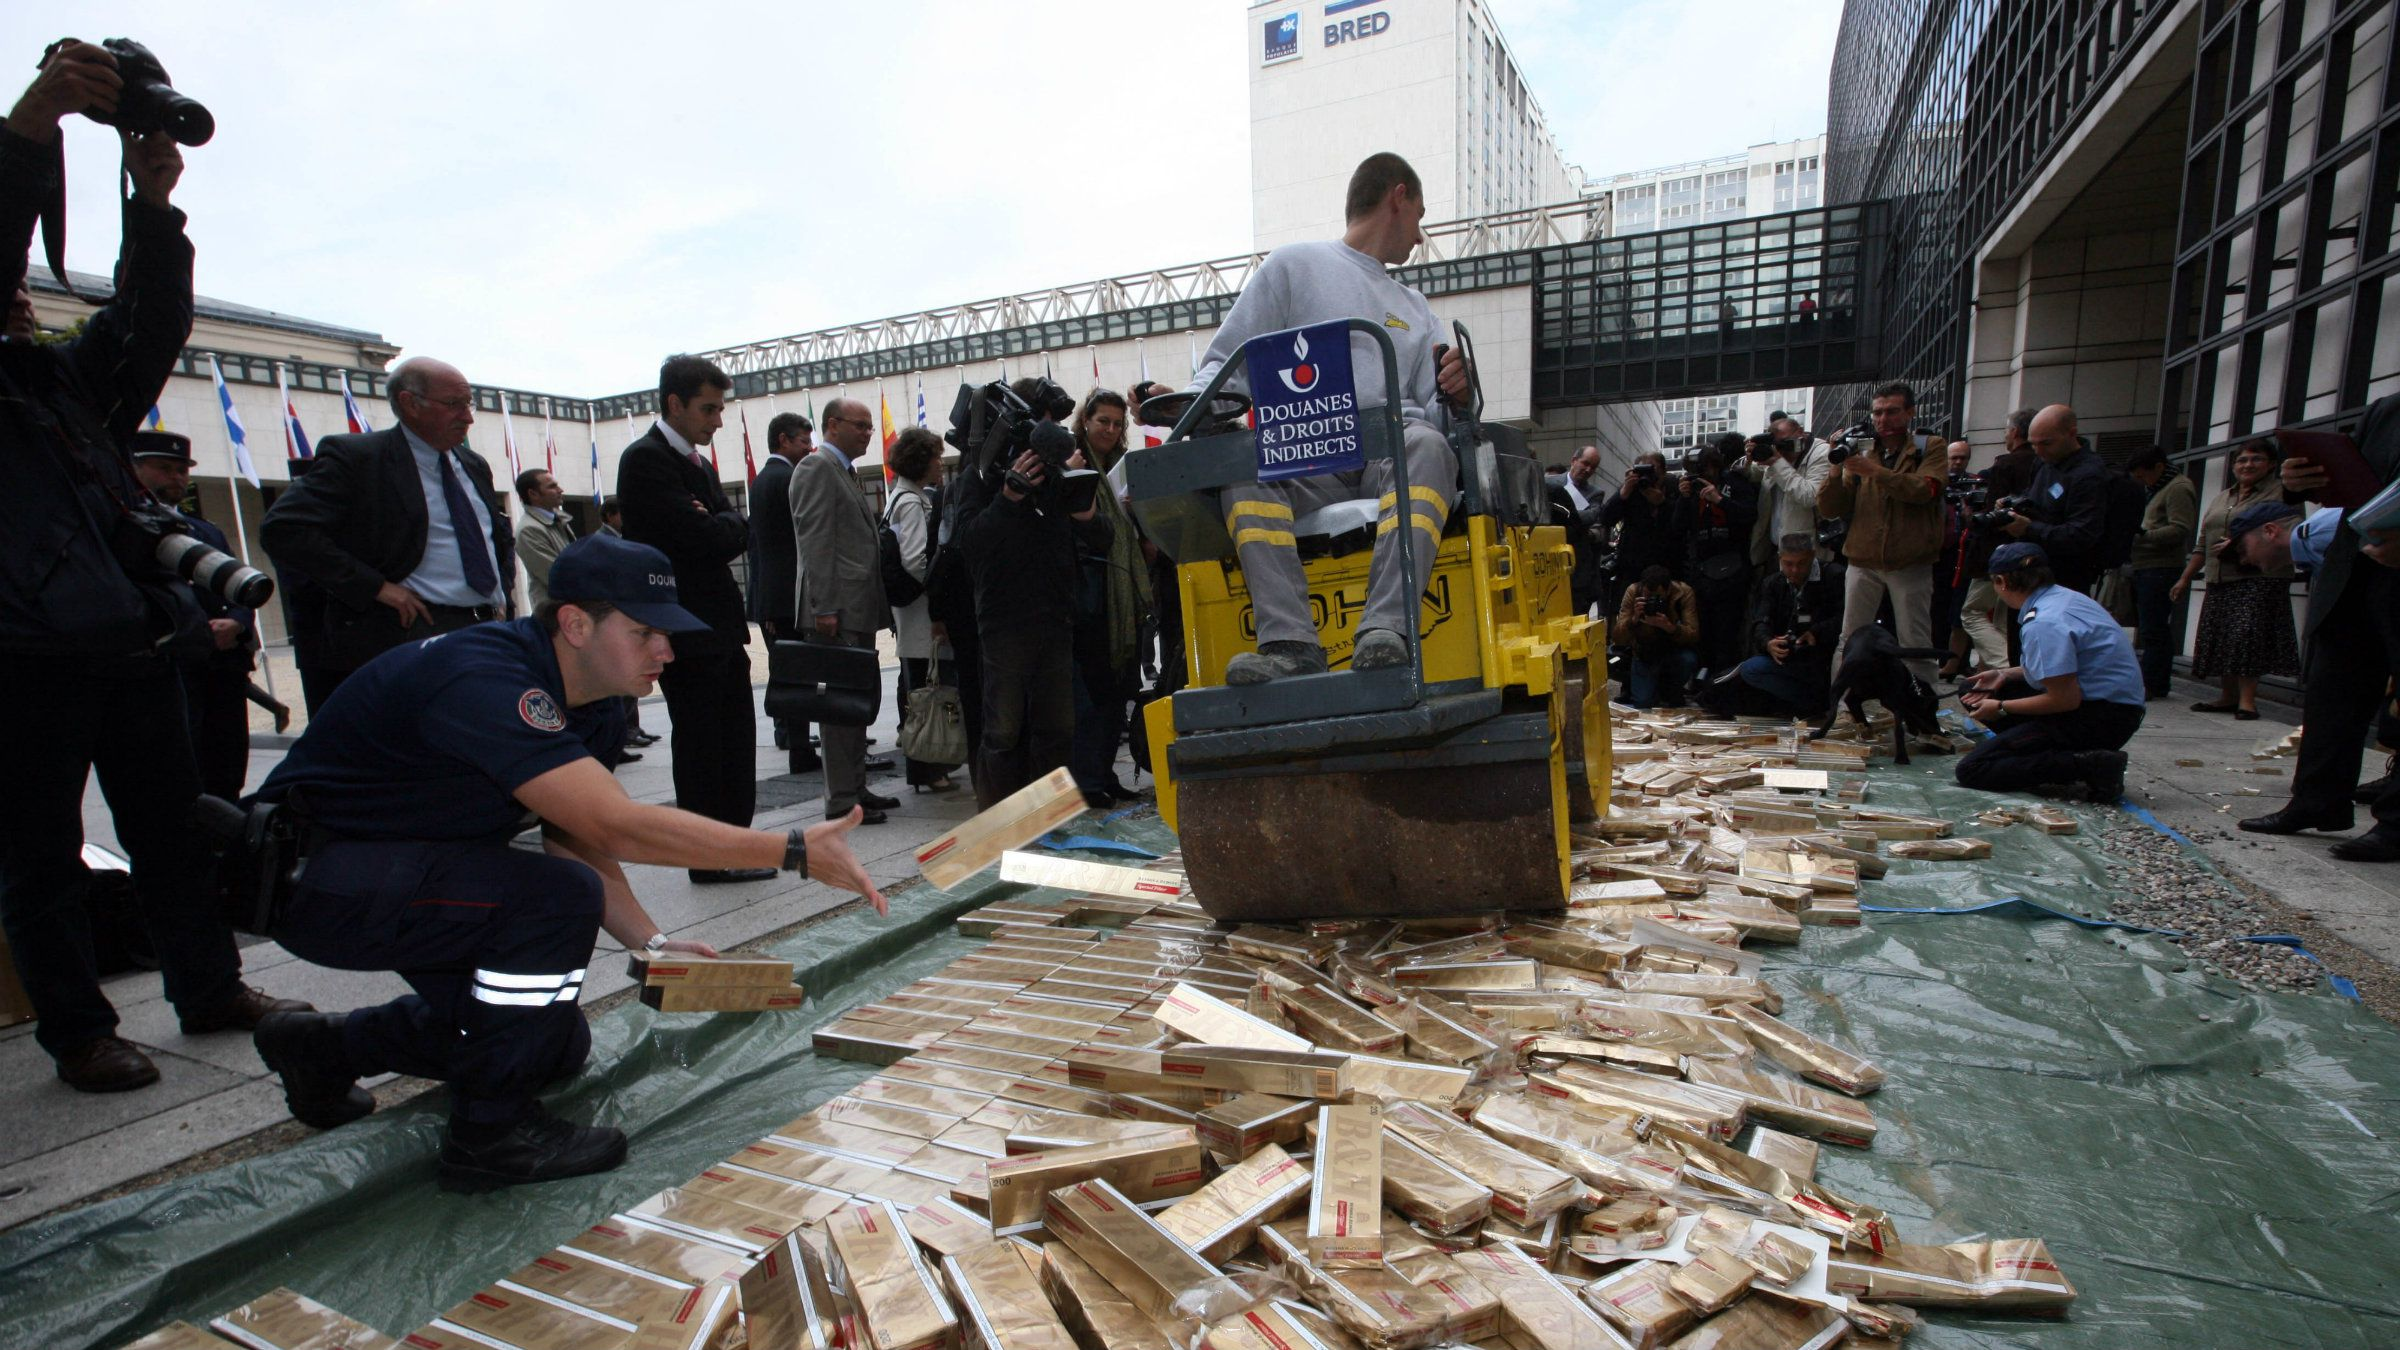 Some thousands of contraband cigarettes are crushed, outside the finance ministry in Paris.